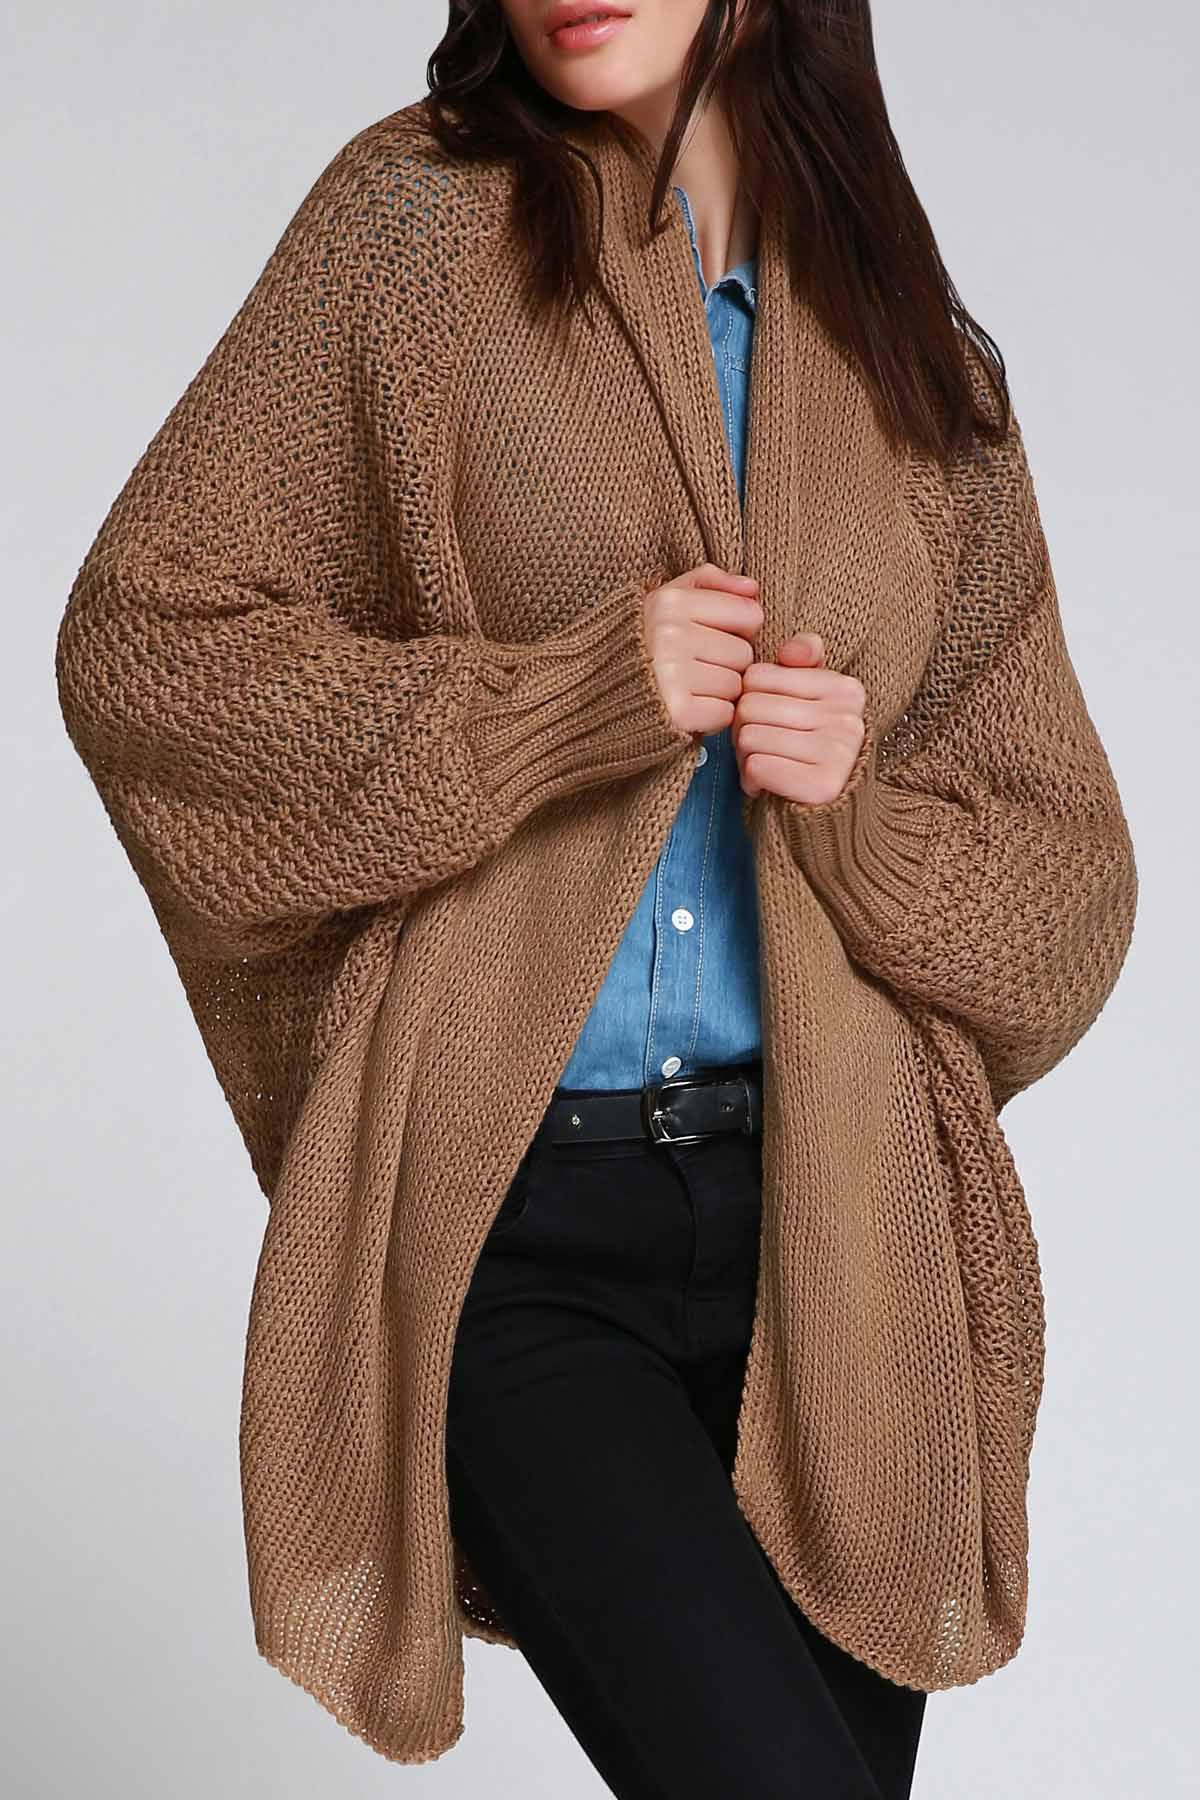 Trendy Stylish Long Batwing Sleeves Solid Color Knitted Loose Fitting Women's Cardigan